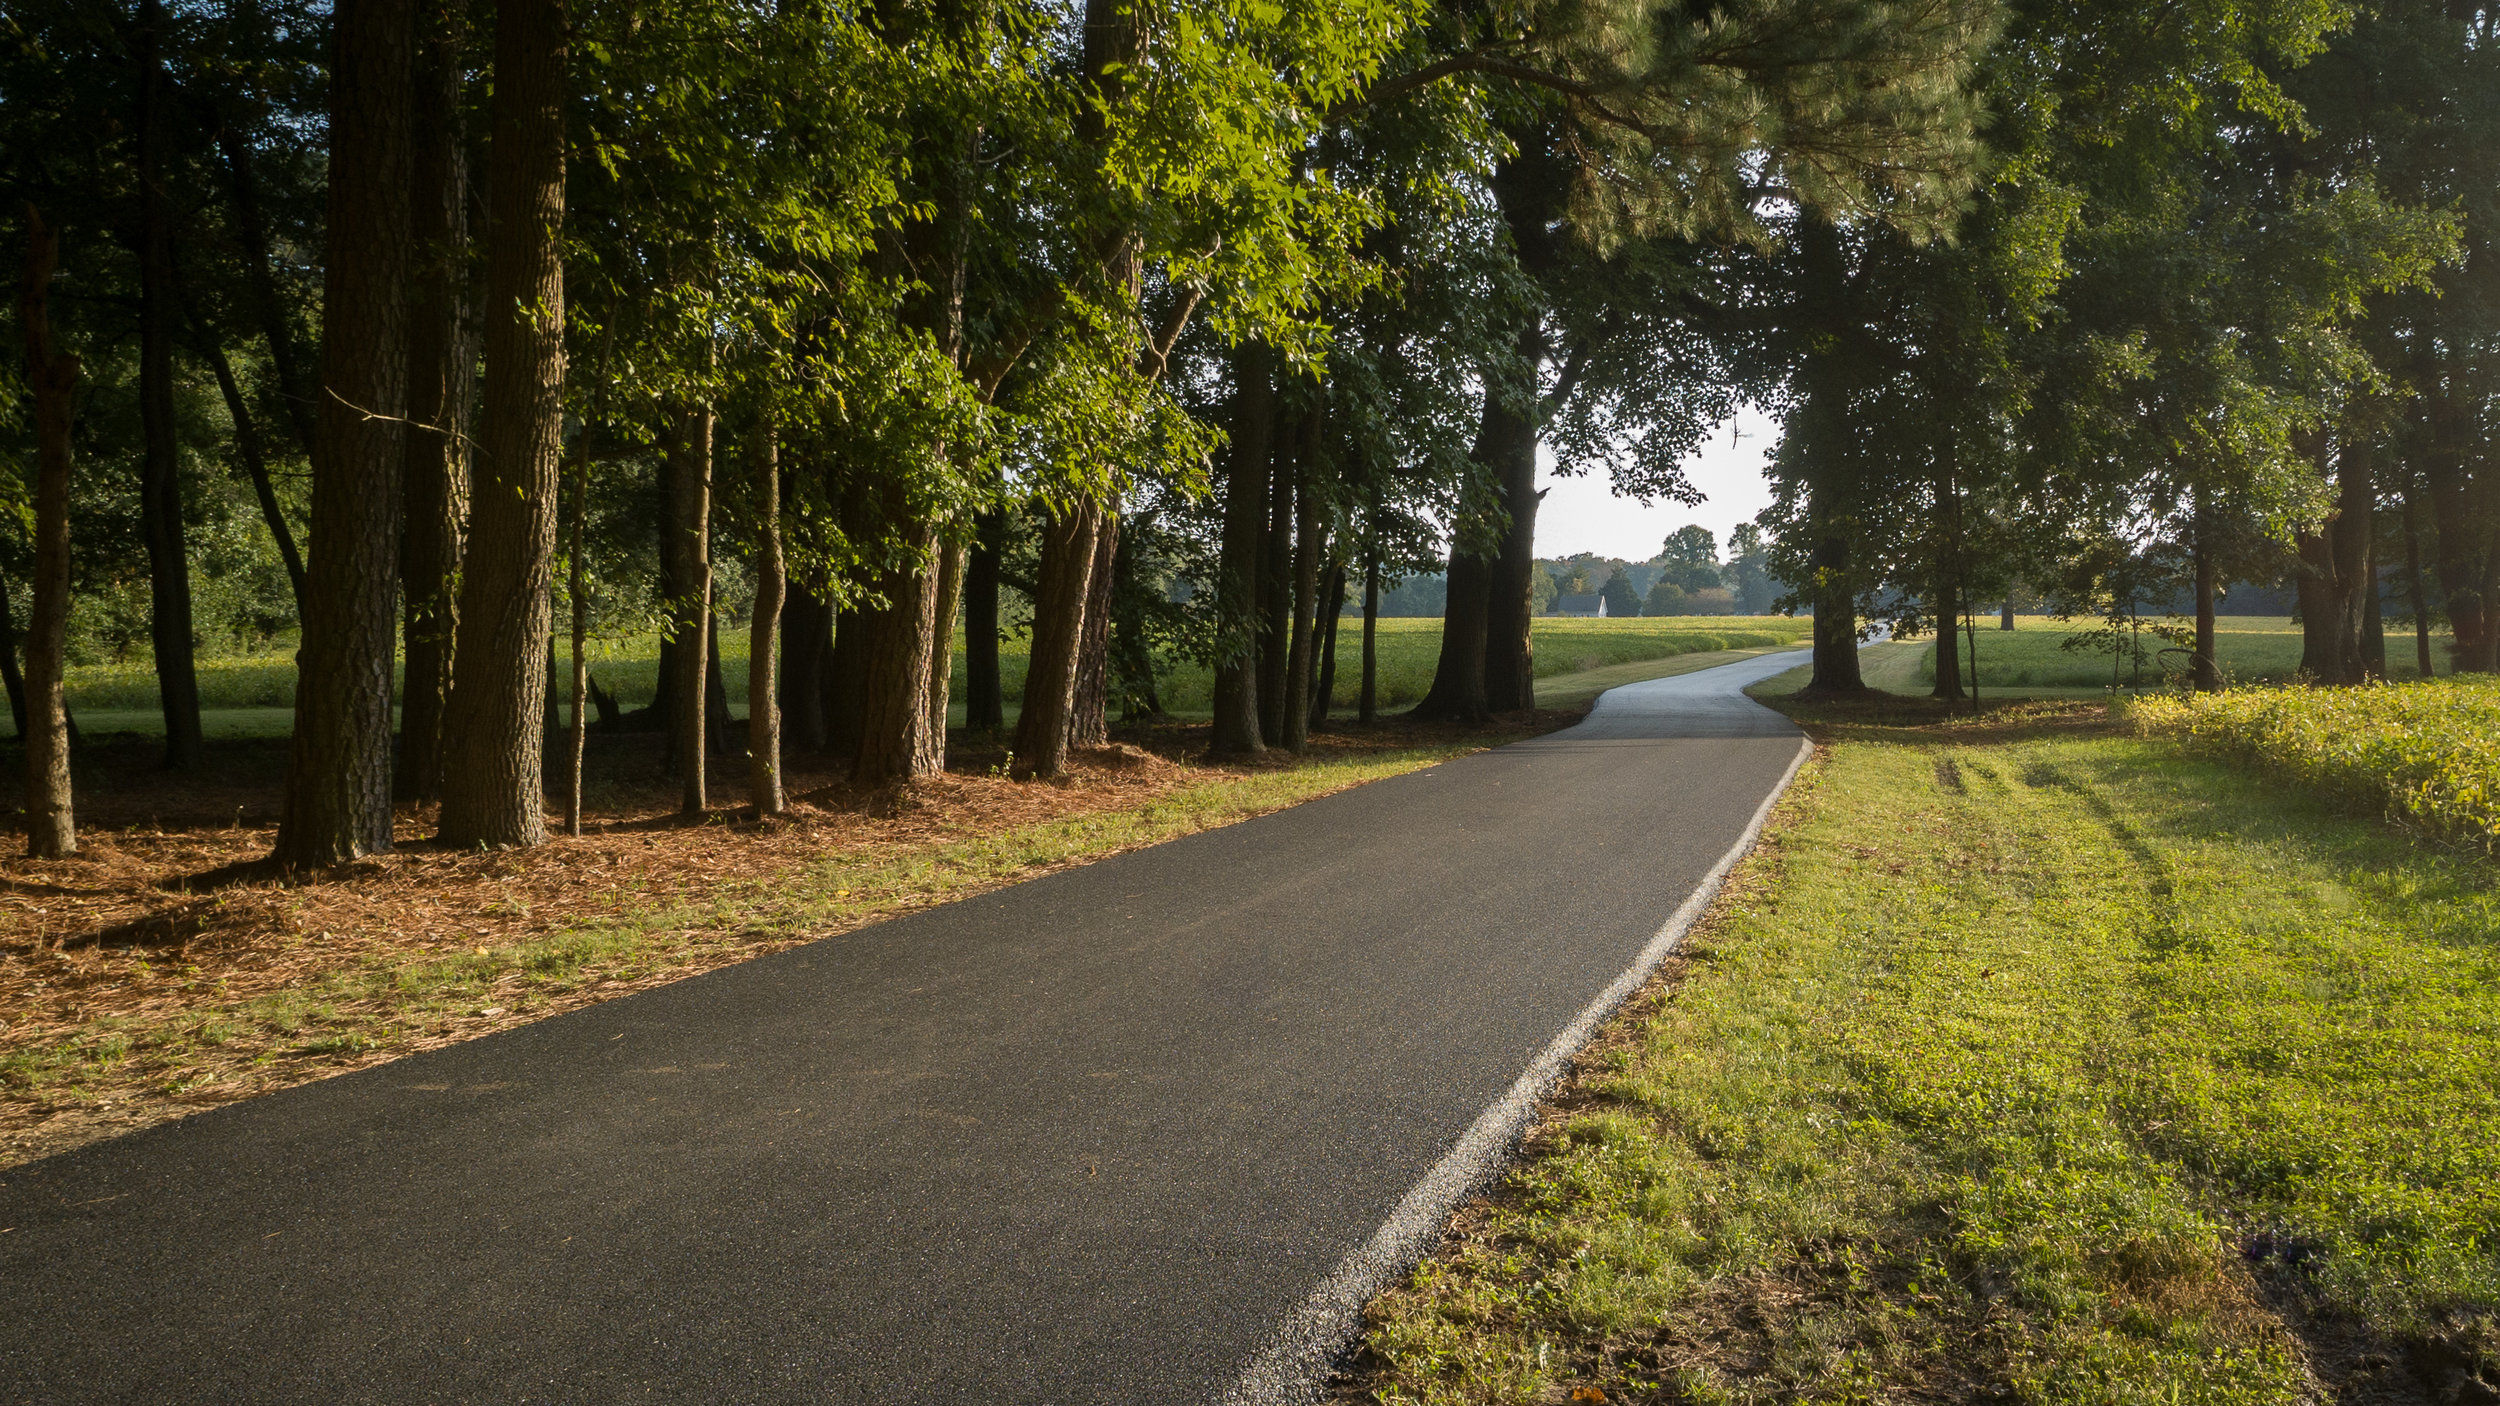 Private Driveway, Easton Maryland